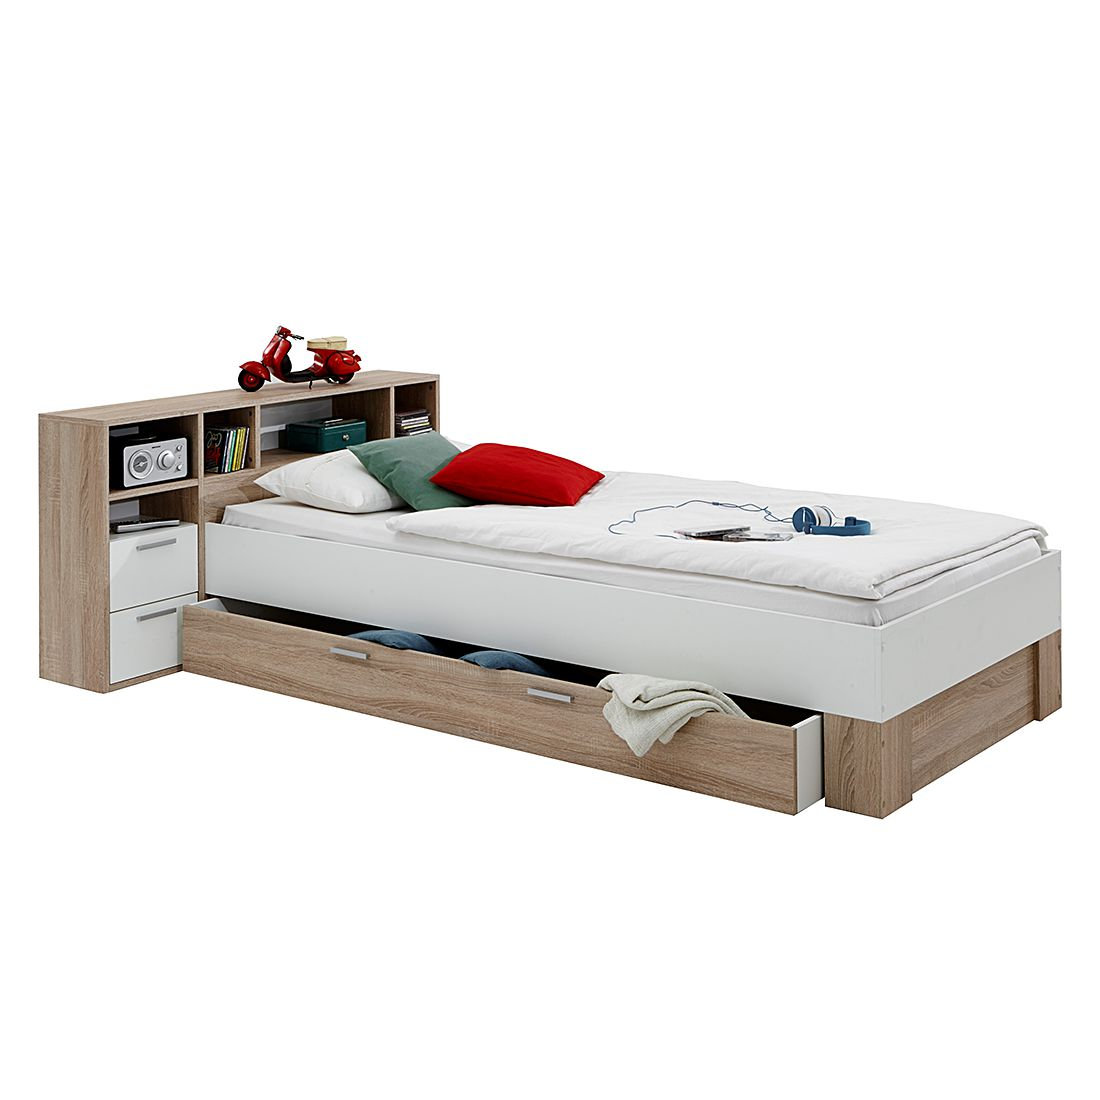 Bed Fabio - eikenhouten look/wit, mooved